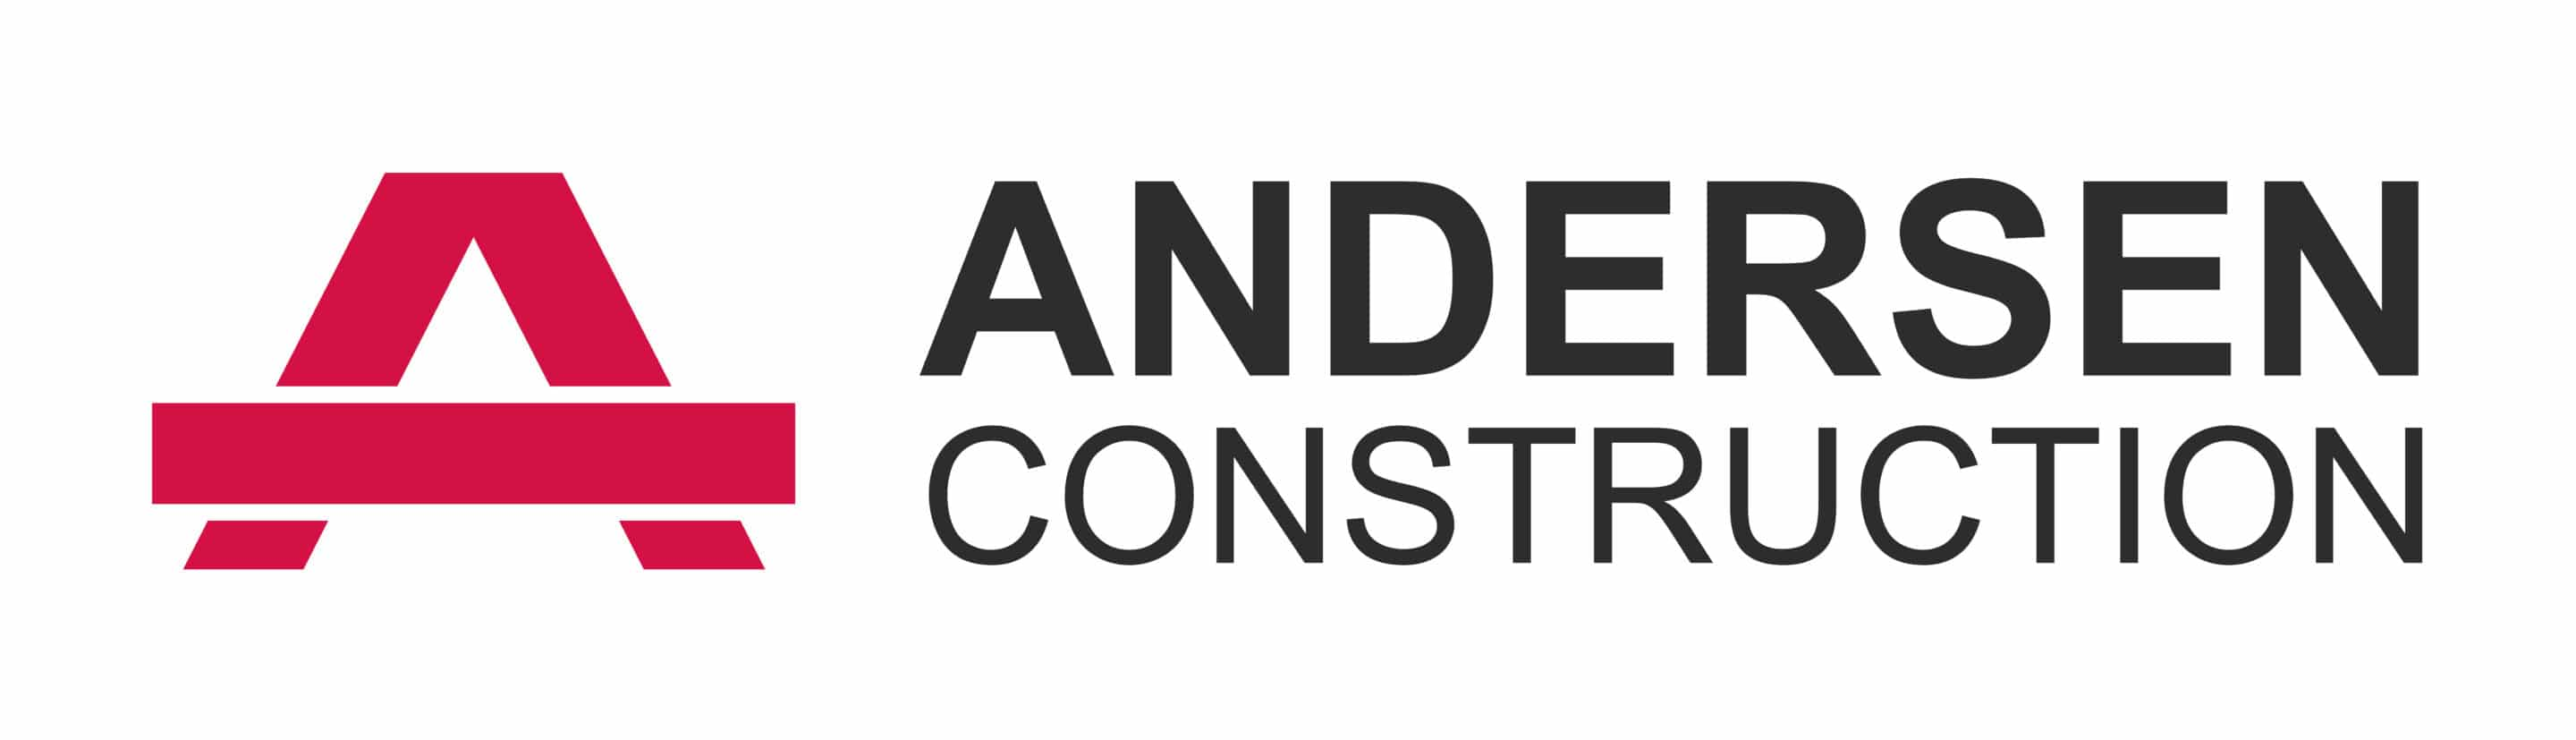 Anderson Construction